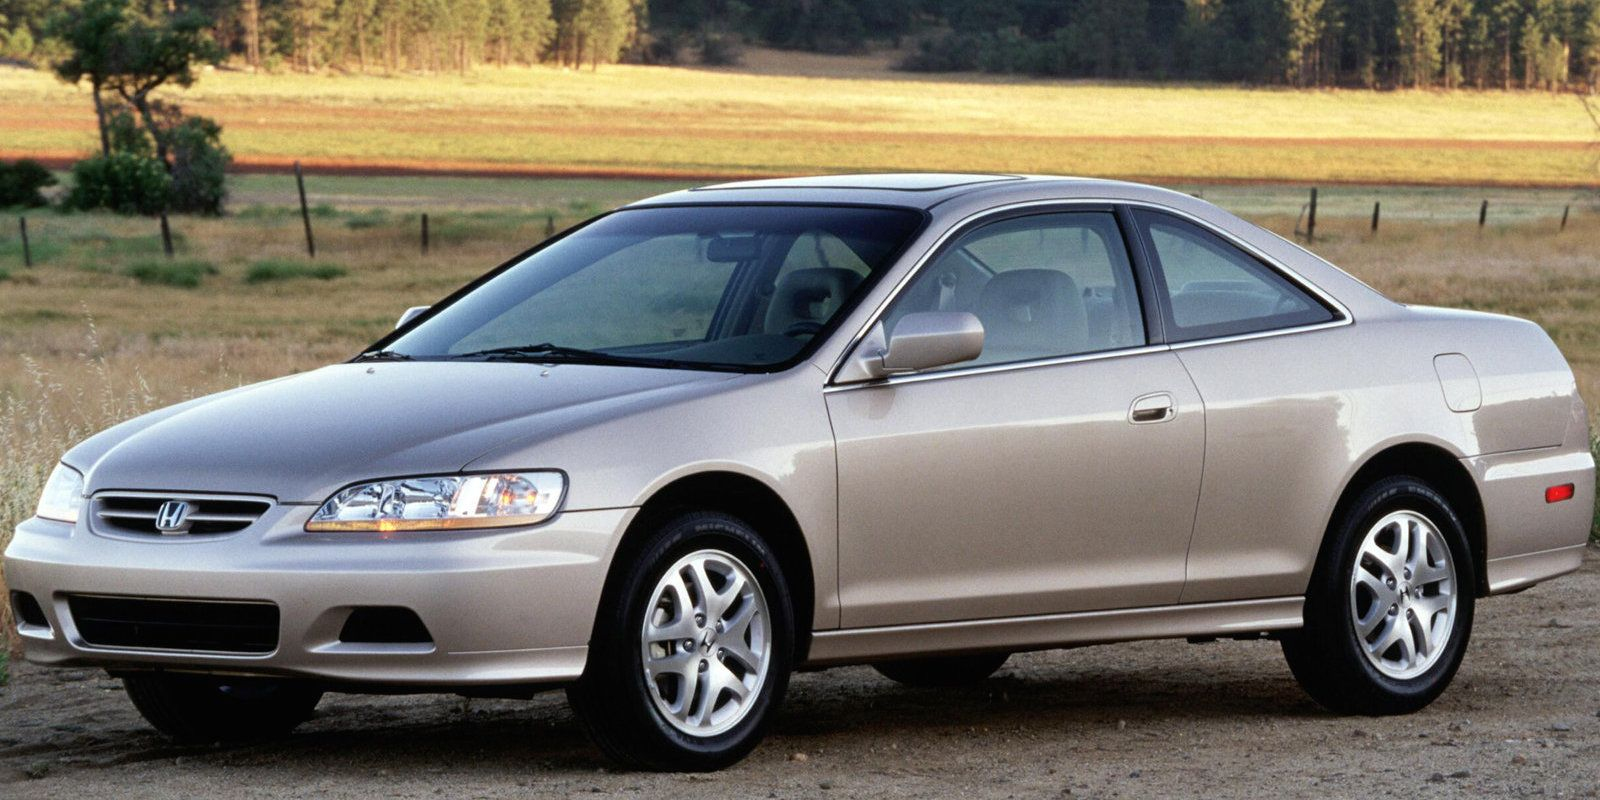 Takata Airbag Recall - 2001-2003 Honda and Acura Cars Recalled for  Dangerous Airbags